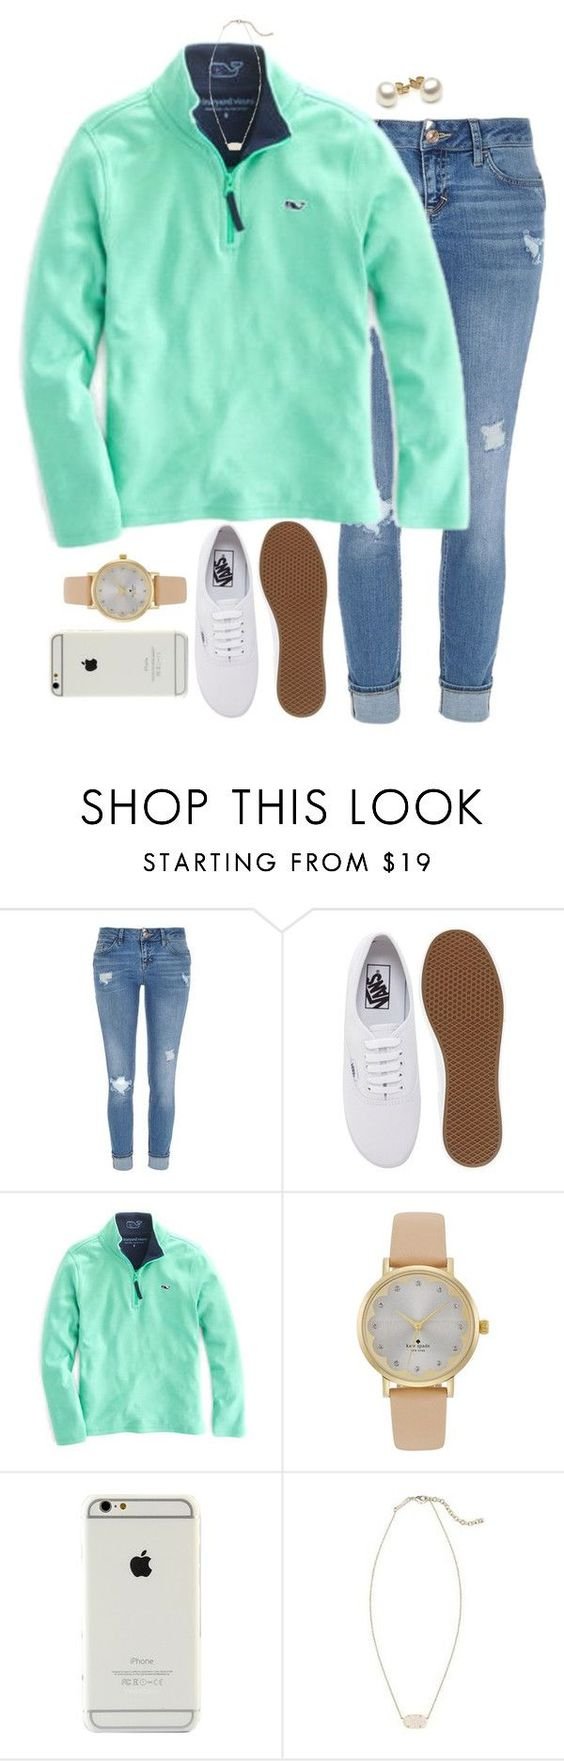 """""""back at it again with the white vans!!"""" by evamstewart24 ❤ liked on Polyvore featuring River Island, Vans, Vineyard Vines, Kate Spade and Kendra Scott"""